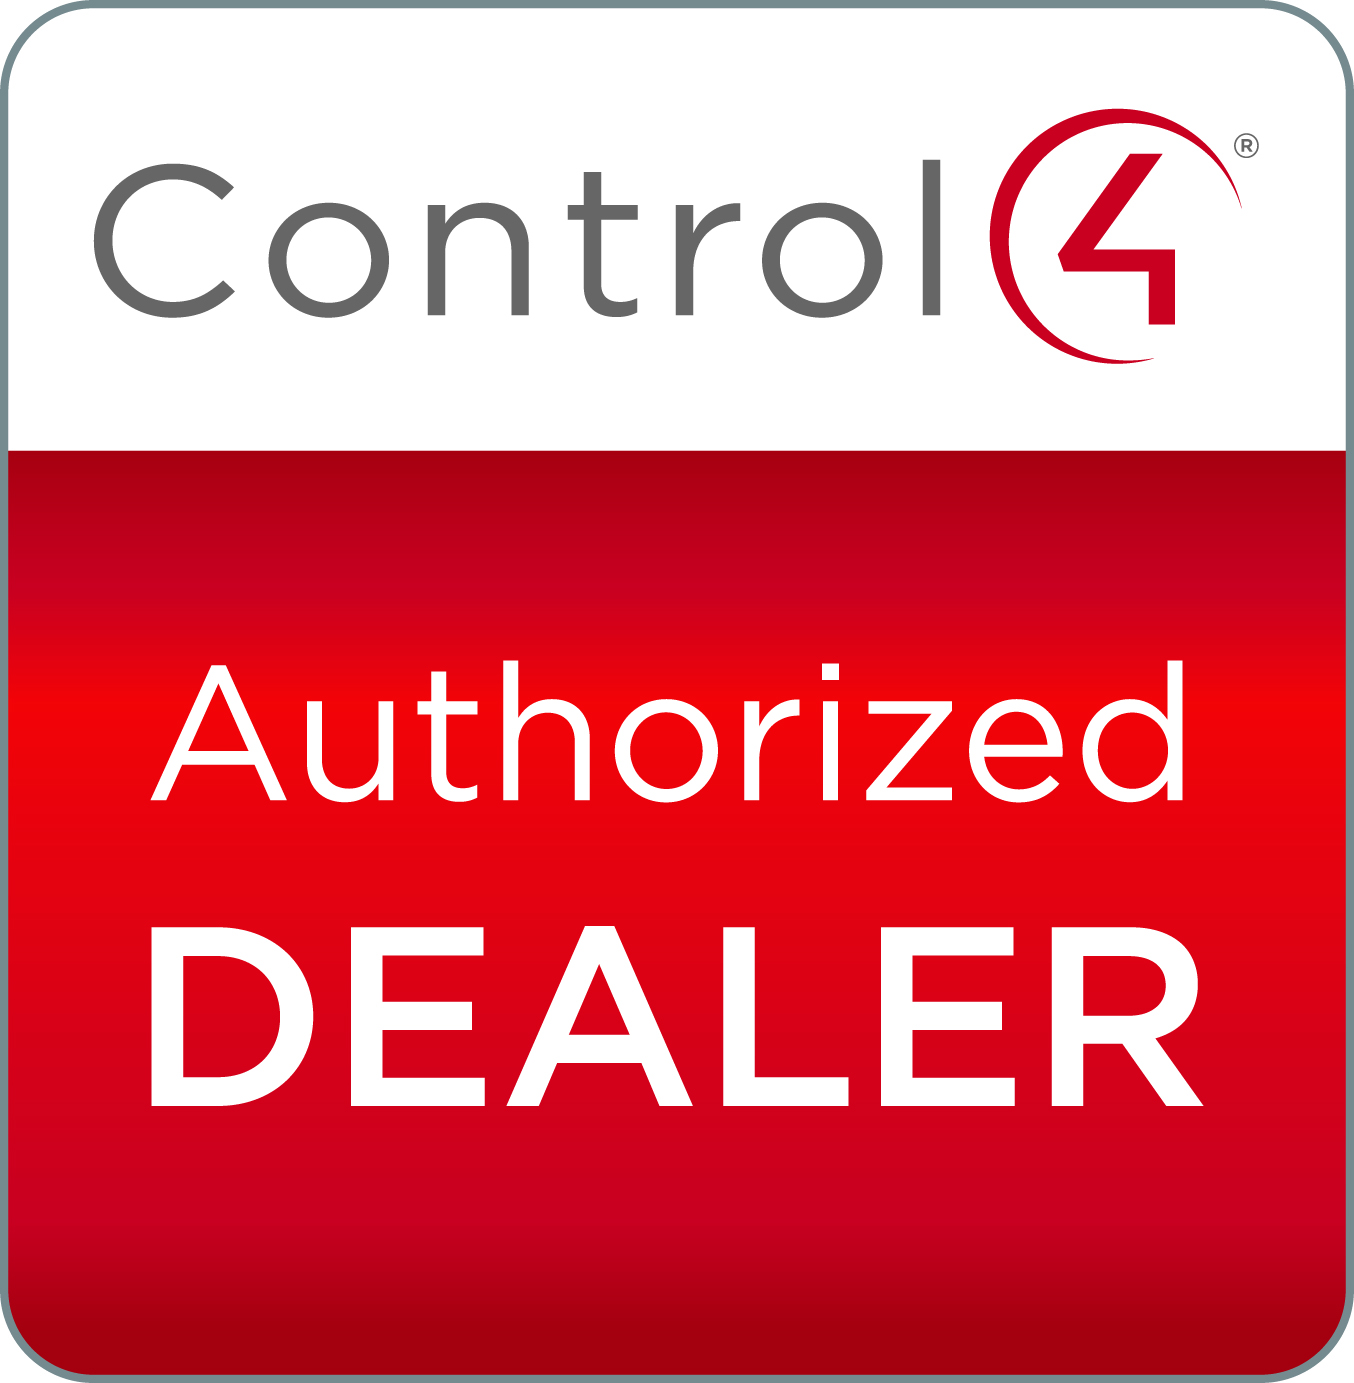 Certified C4 Dealer logo